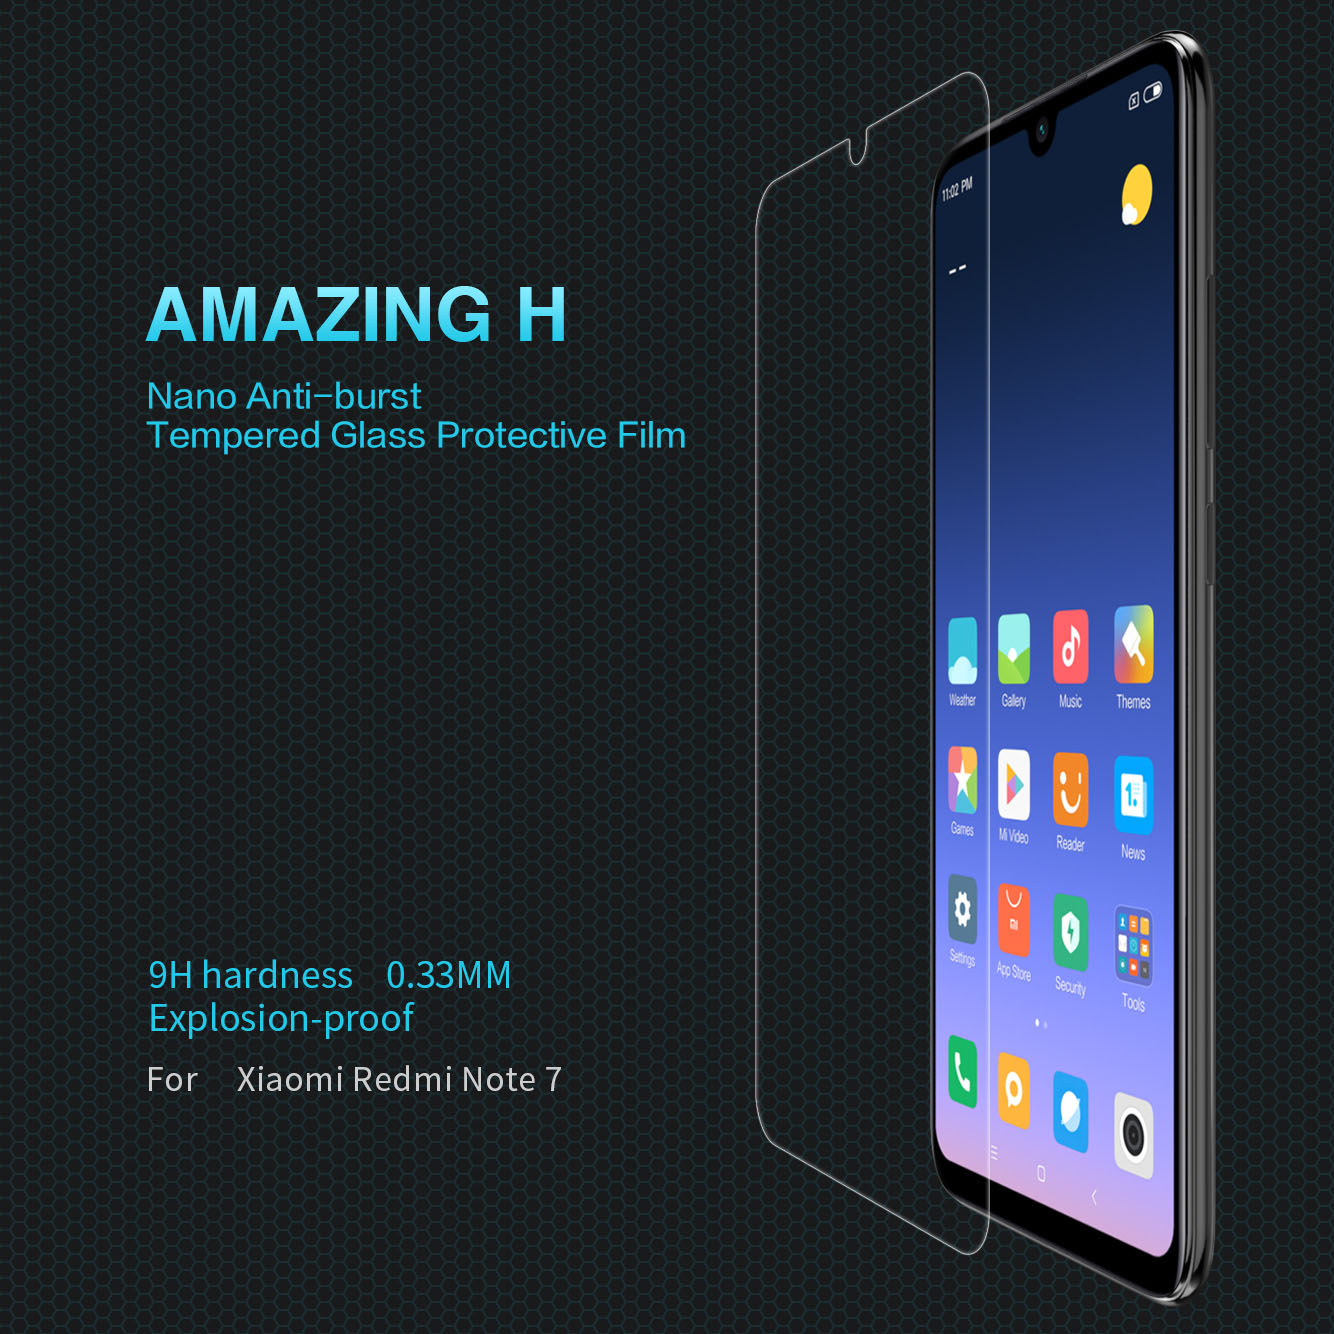 XIAOMI Redmi Note 7 screen protector